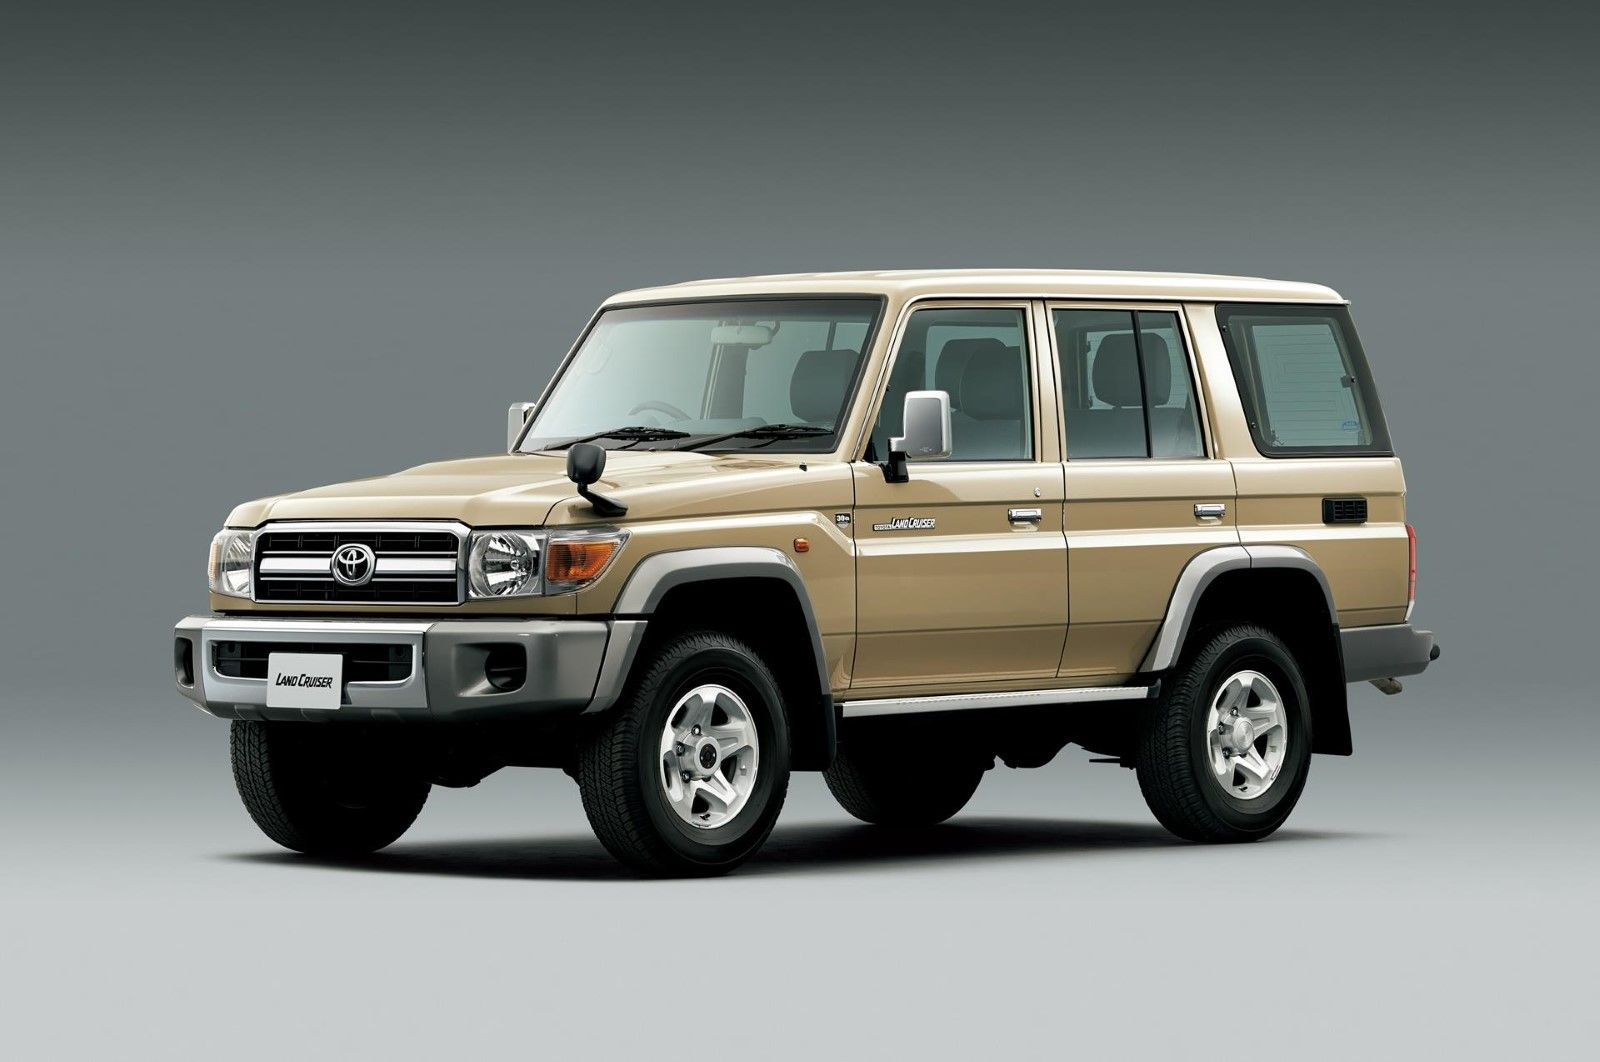 Toyota landcruiser 70 series 30th anniversary via wcxc